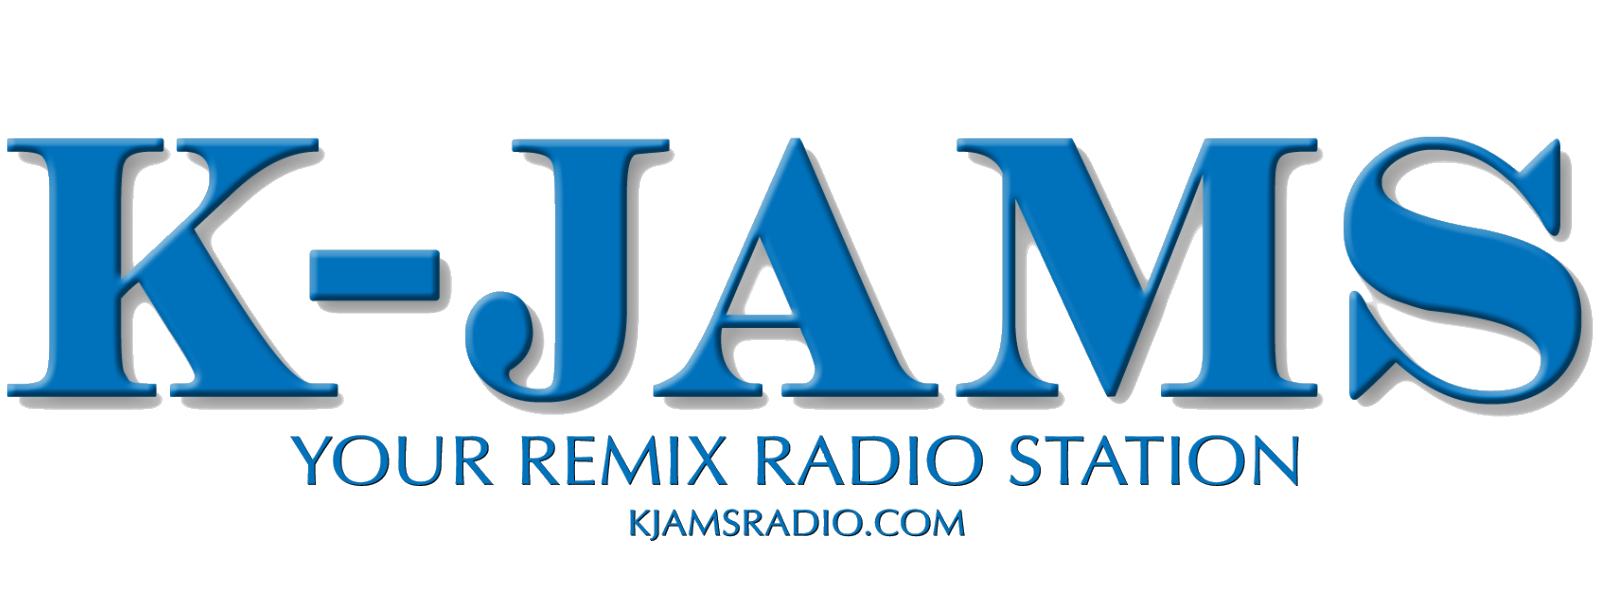 KJAMS Radio | KJAMS Radio - Old School Hip-Hop - Old School Music - DJ Mixing